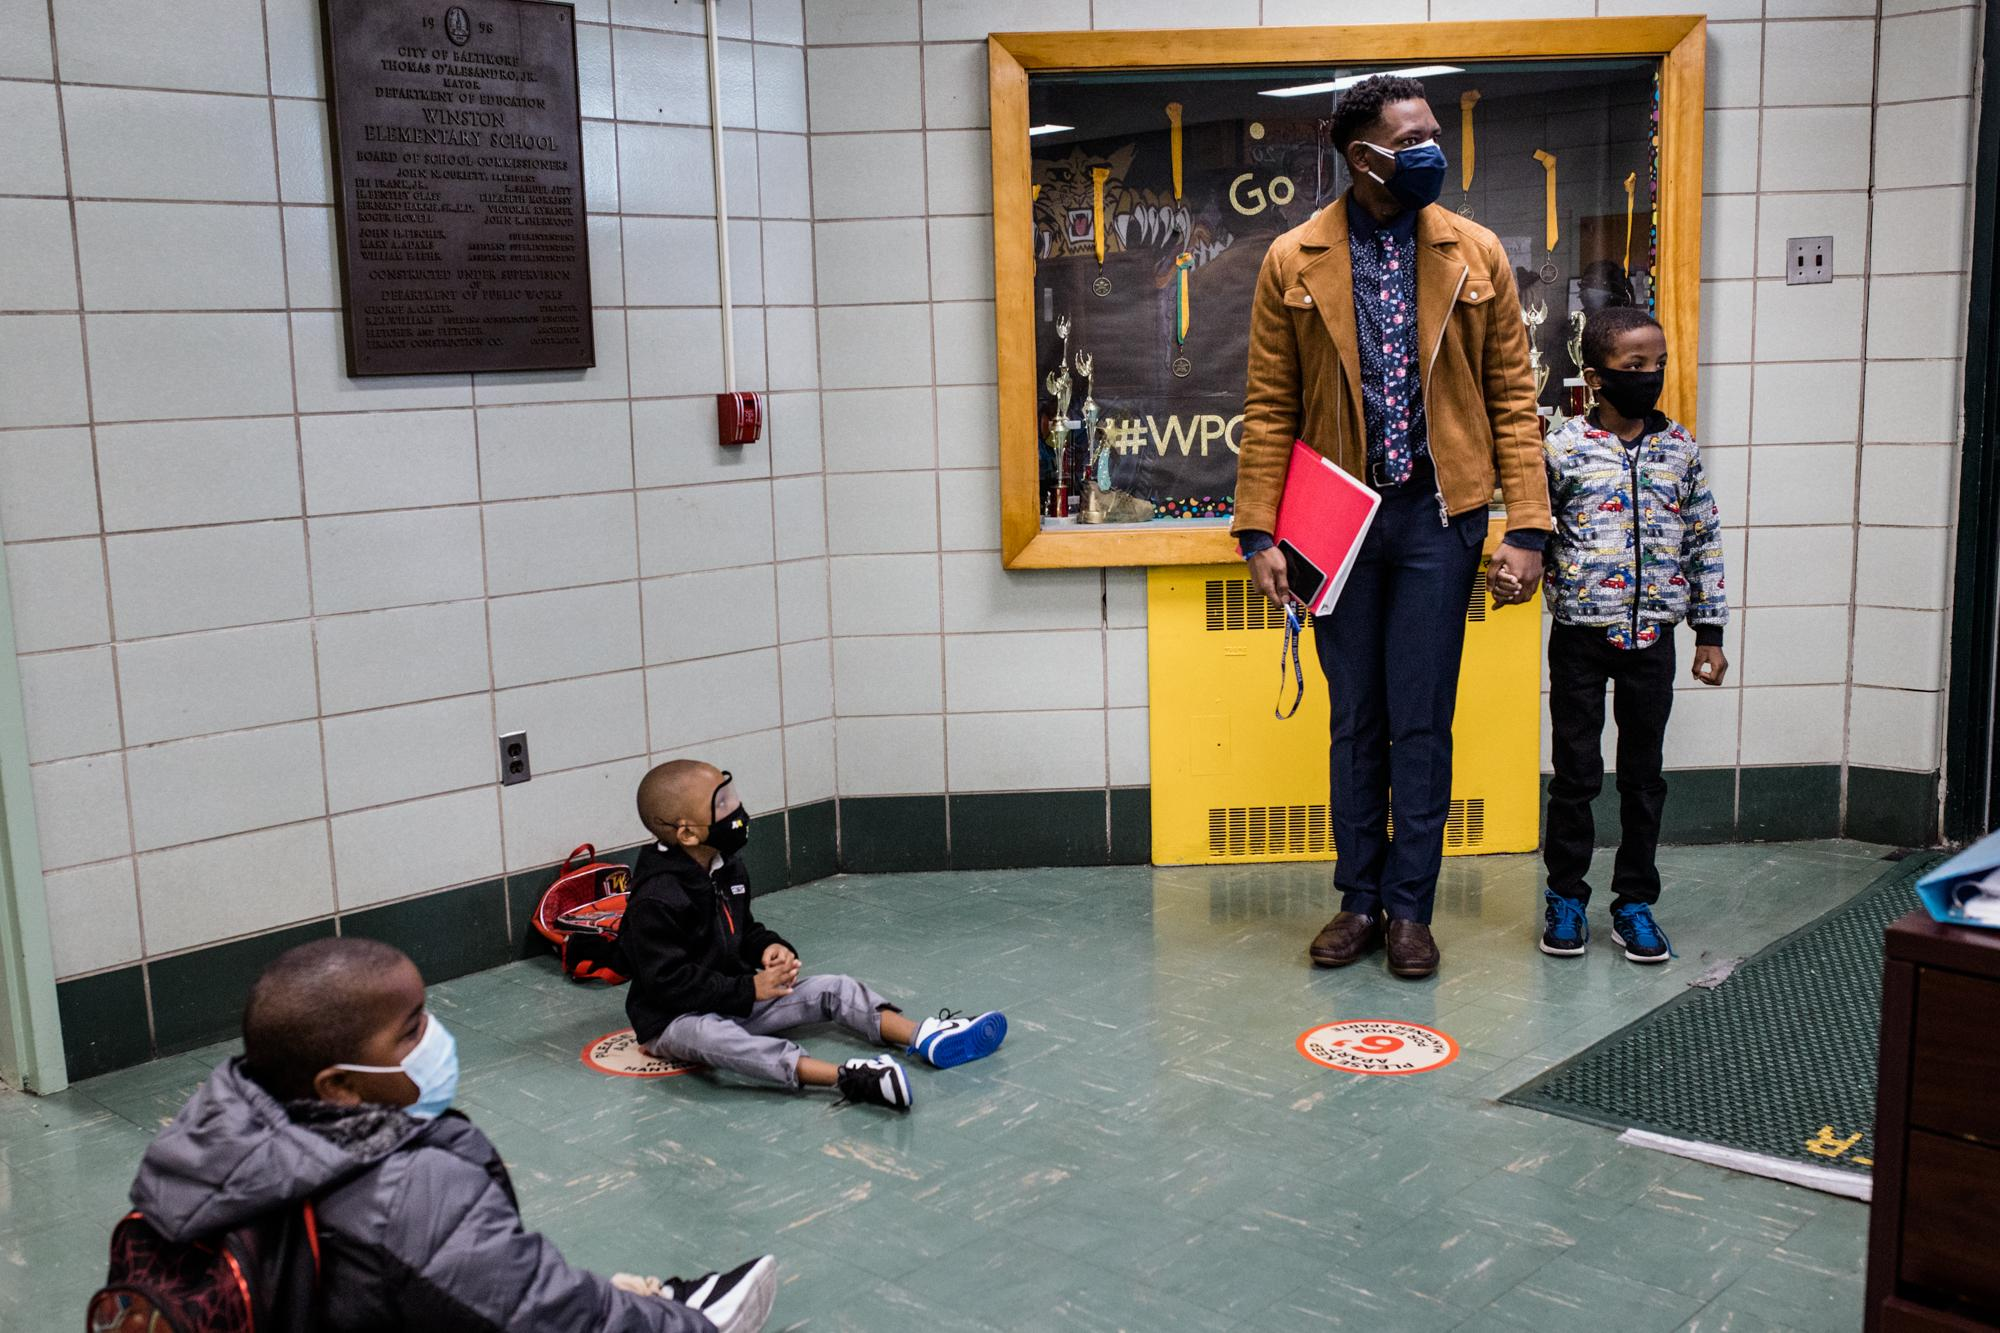 BALTIMORE, MD - NOVEMBER 16, 2020: Principal Brandon Pinkney guides his students, (L-R), James Jennifer, Evan Gillard and Tayvon? on the new safety procedures to have in-person classes for the first time since the start of the coronavirus pandemic at Walter P Carter Elementary/Middle school.